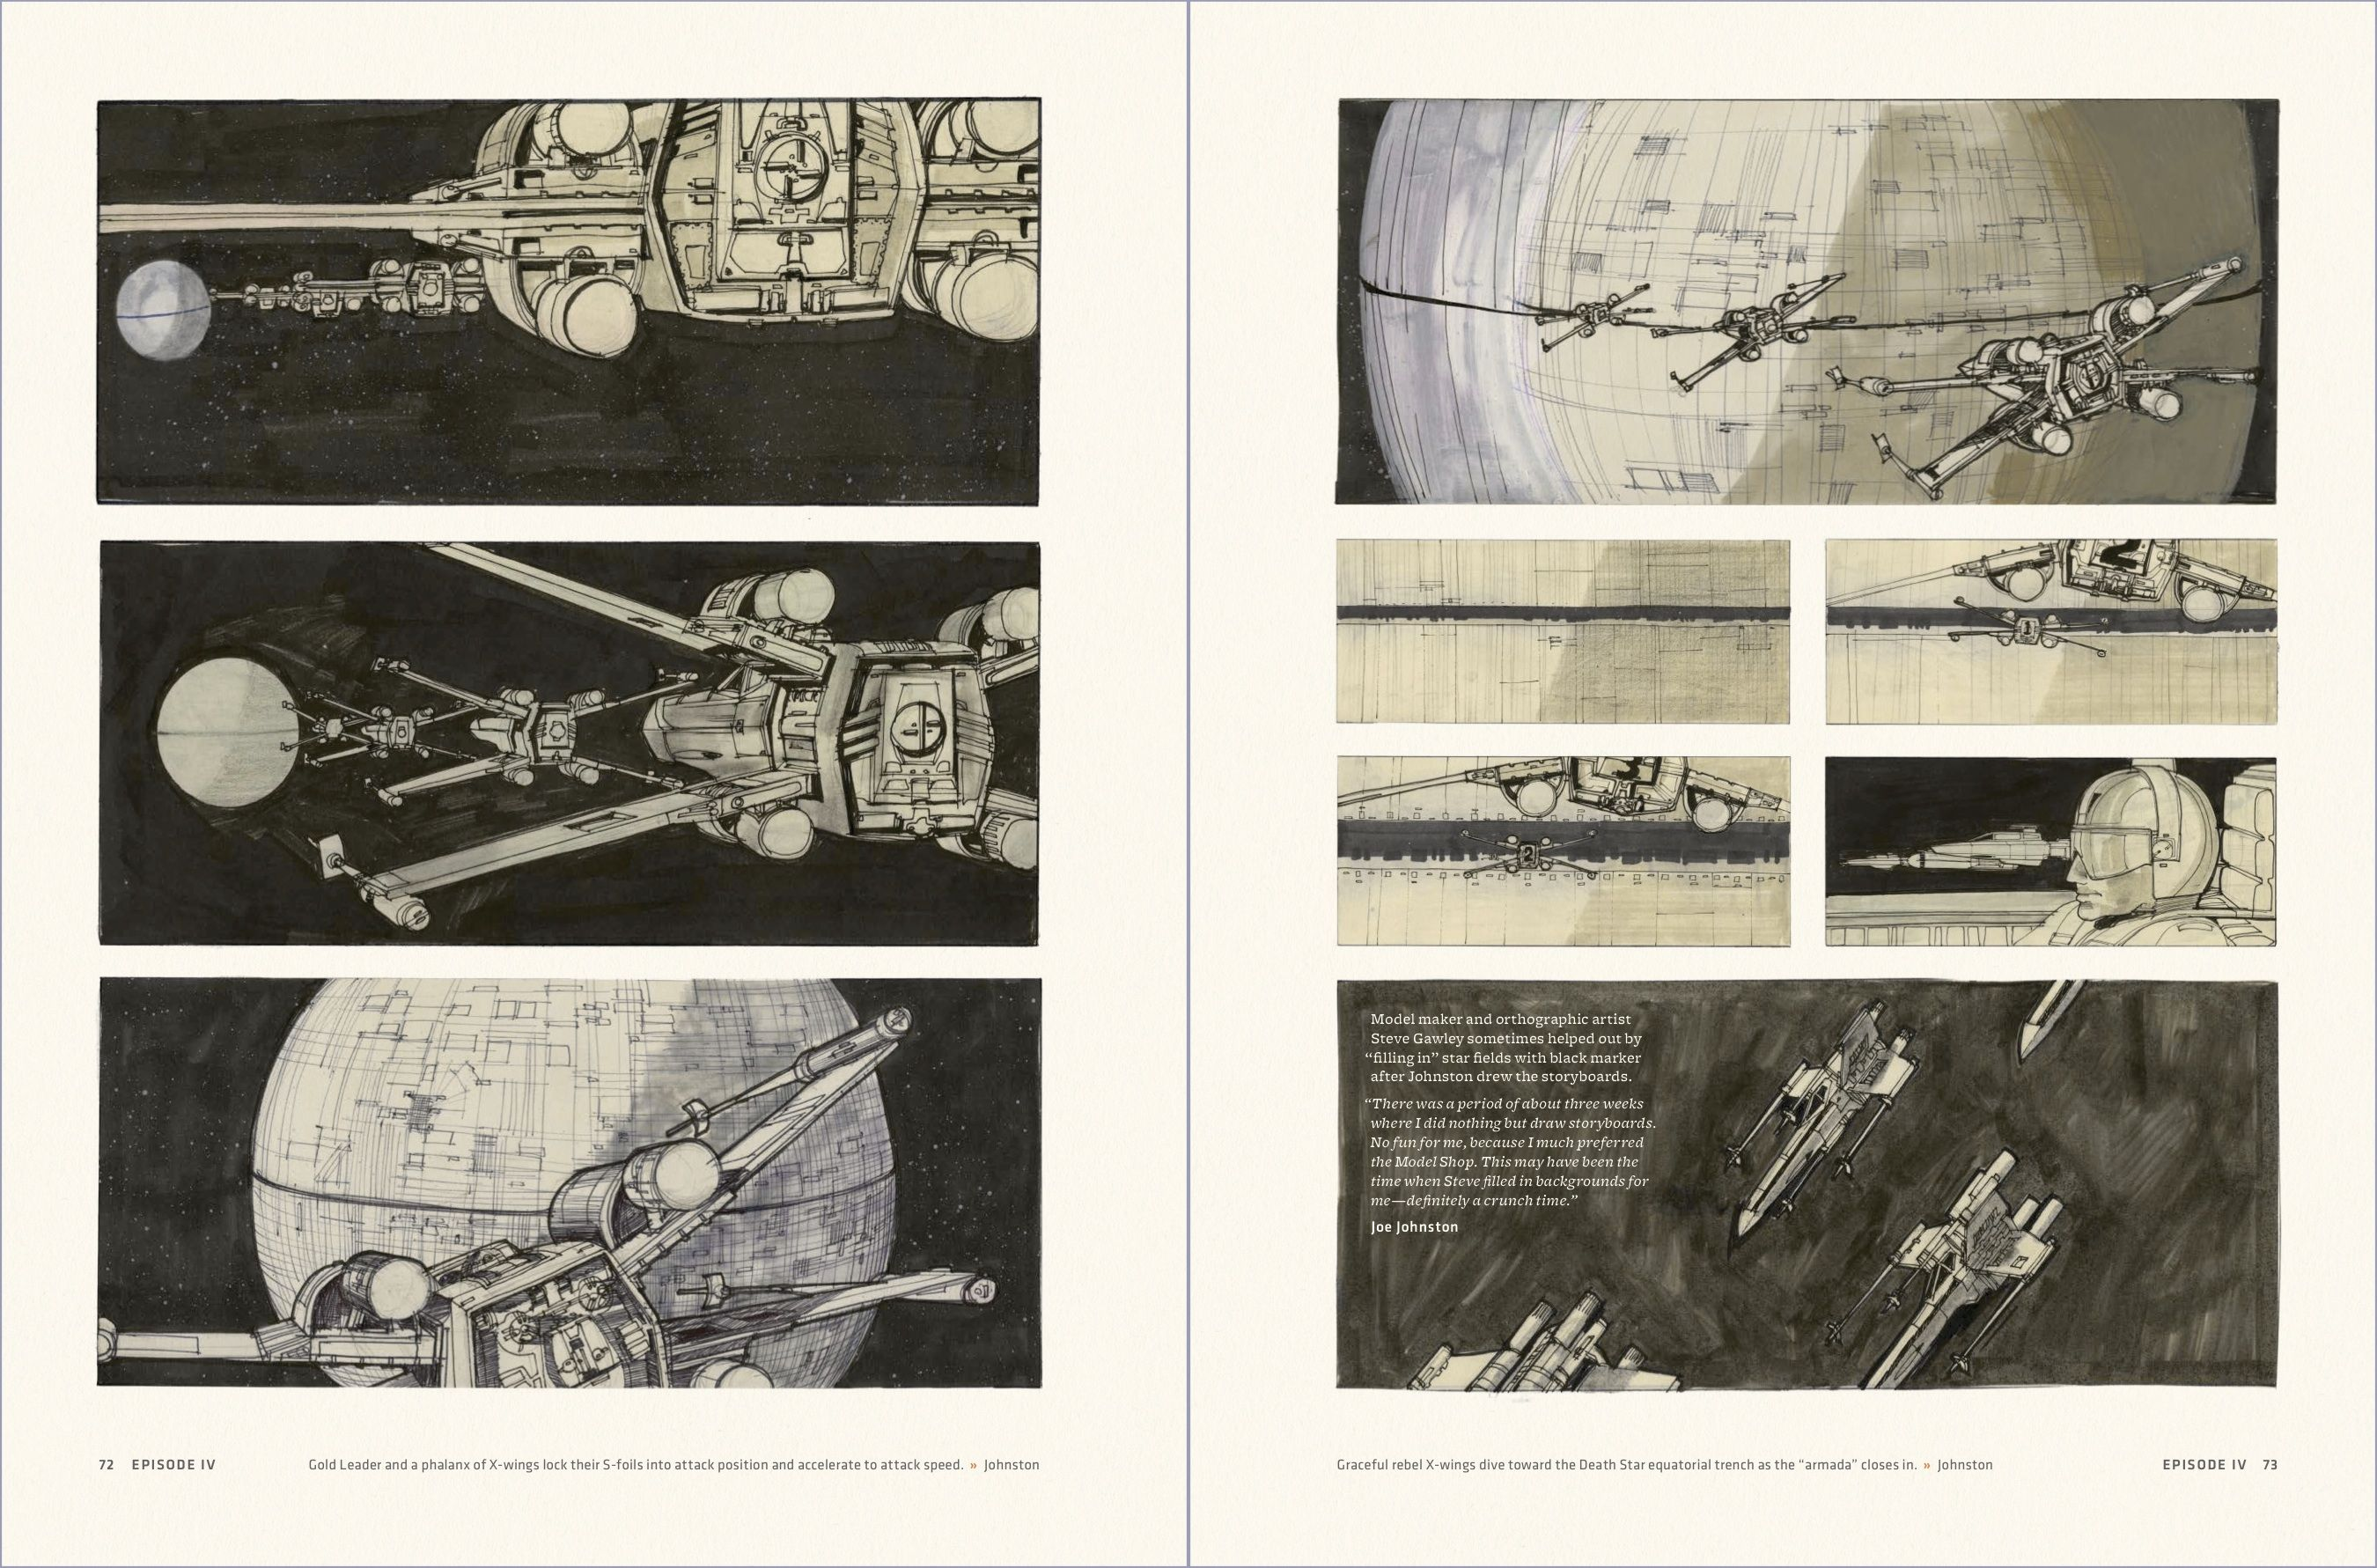 LucasfilmS Executive Editor Discusses Star Wars Storyboards